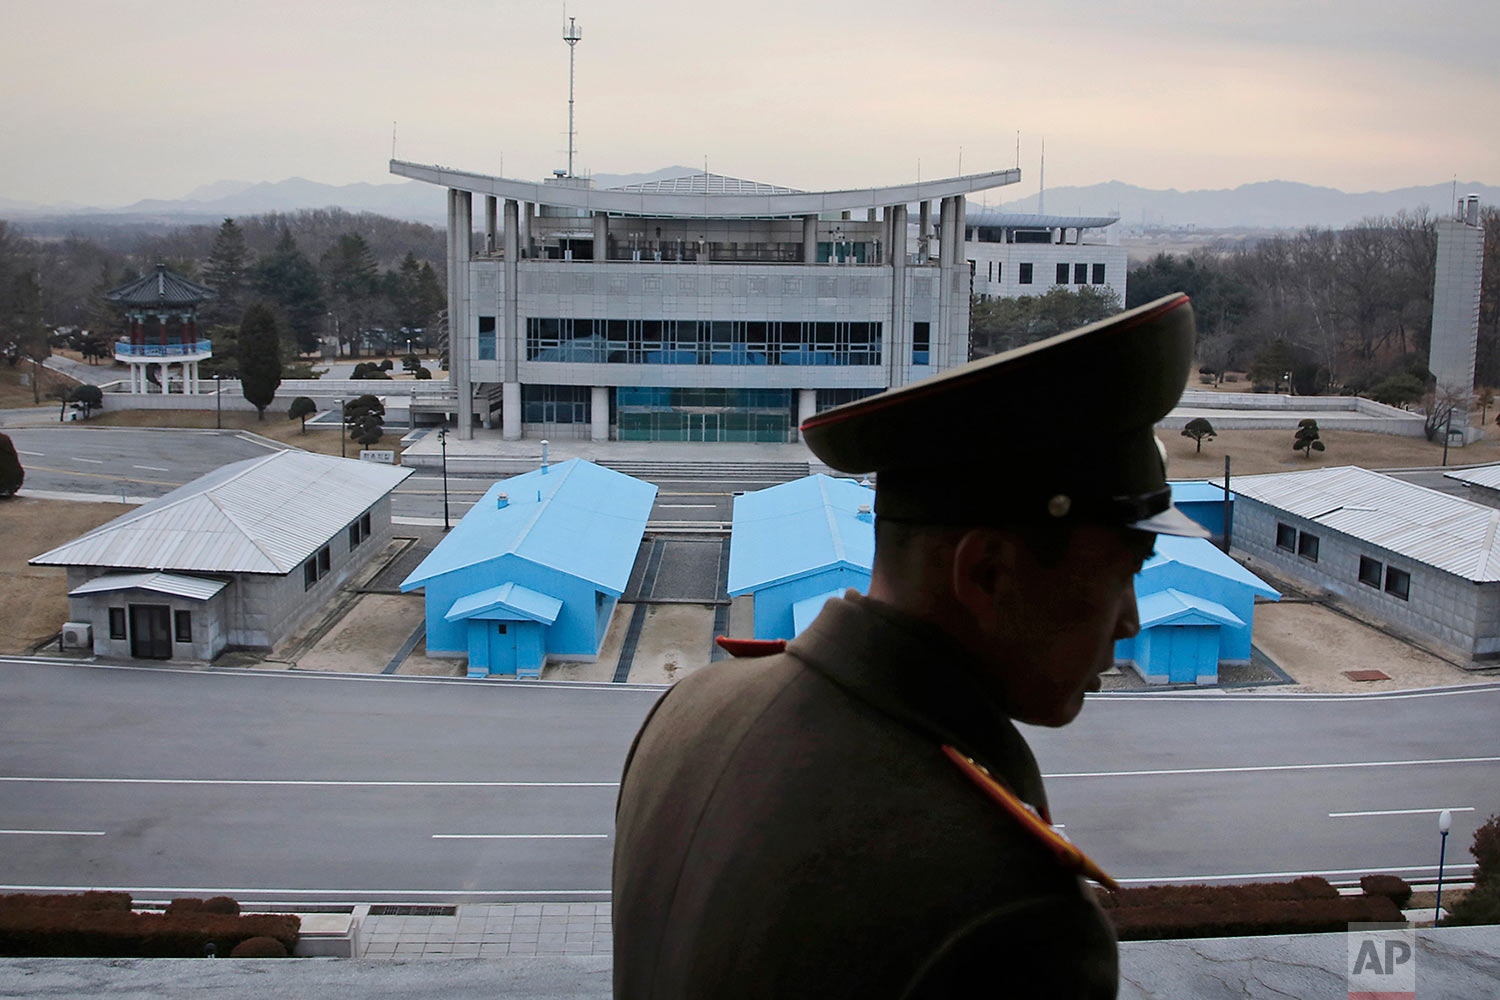 A North Korean army officer looks out at the Demilitarized Zone that separates the two Koreas in Panmunjom, Korea, on Feb. 22, 2016. (AP Photo/Wong Maye-E)